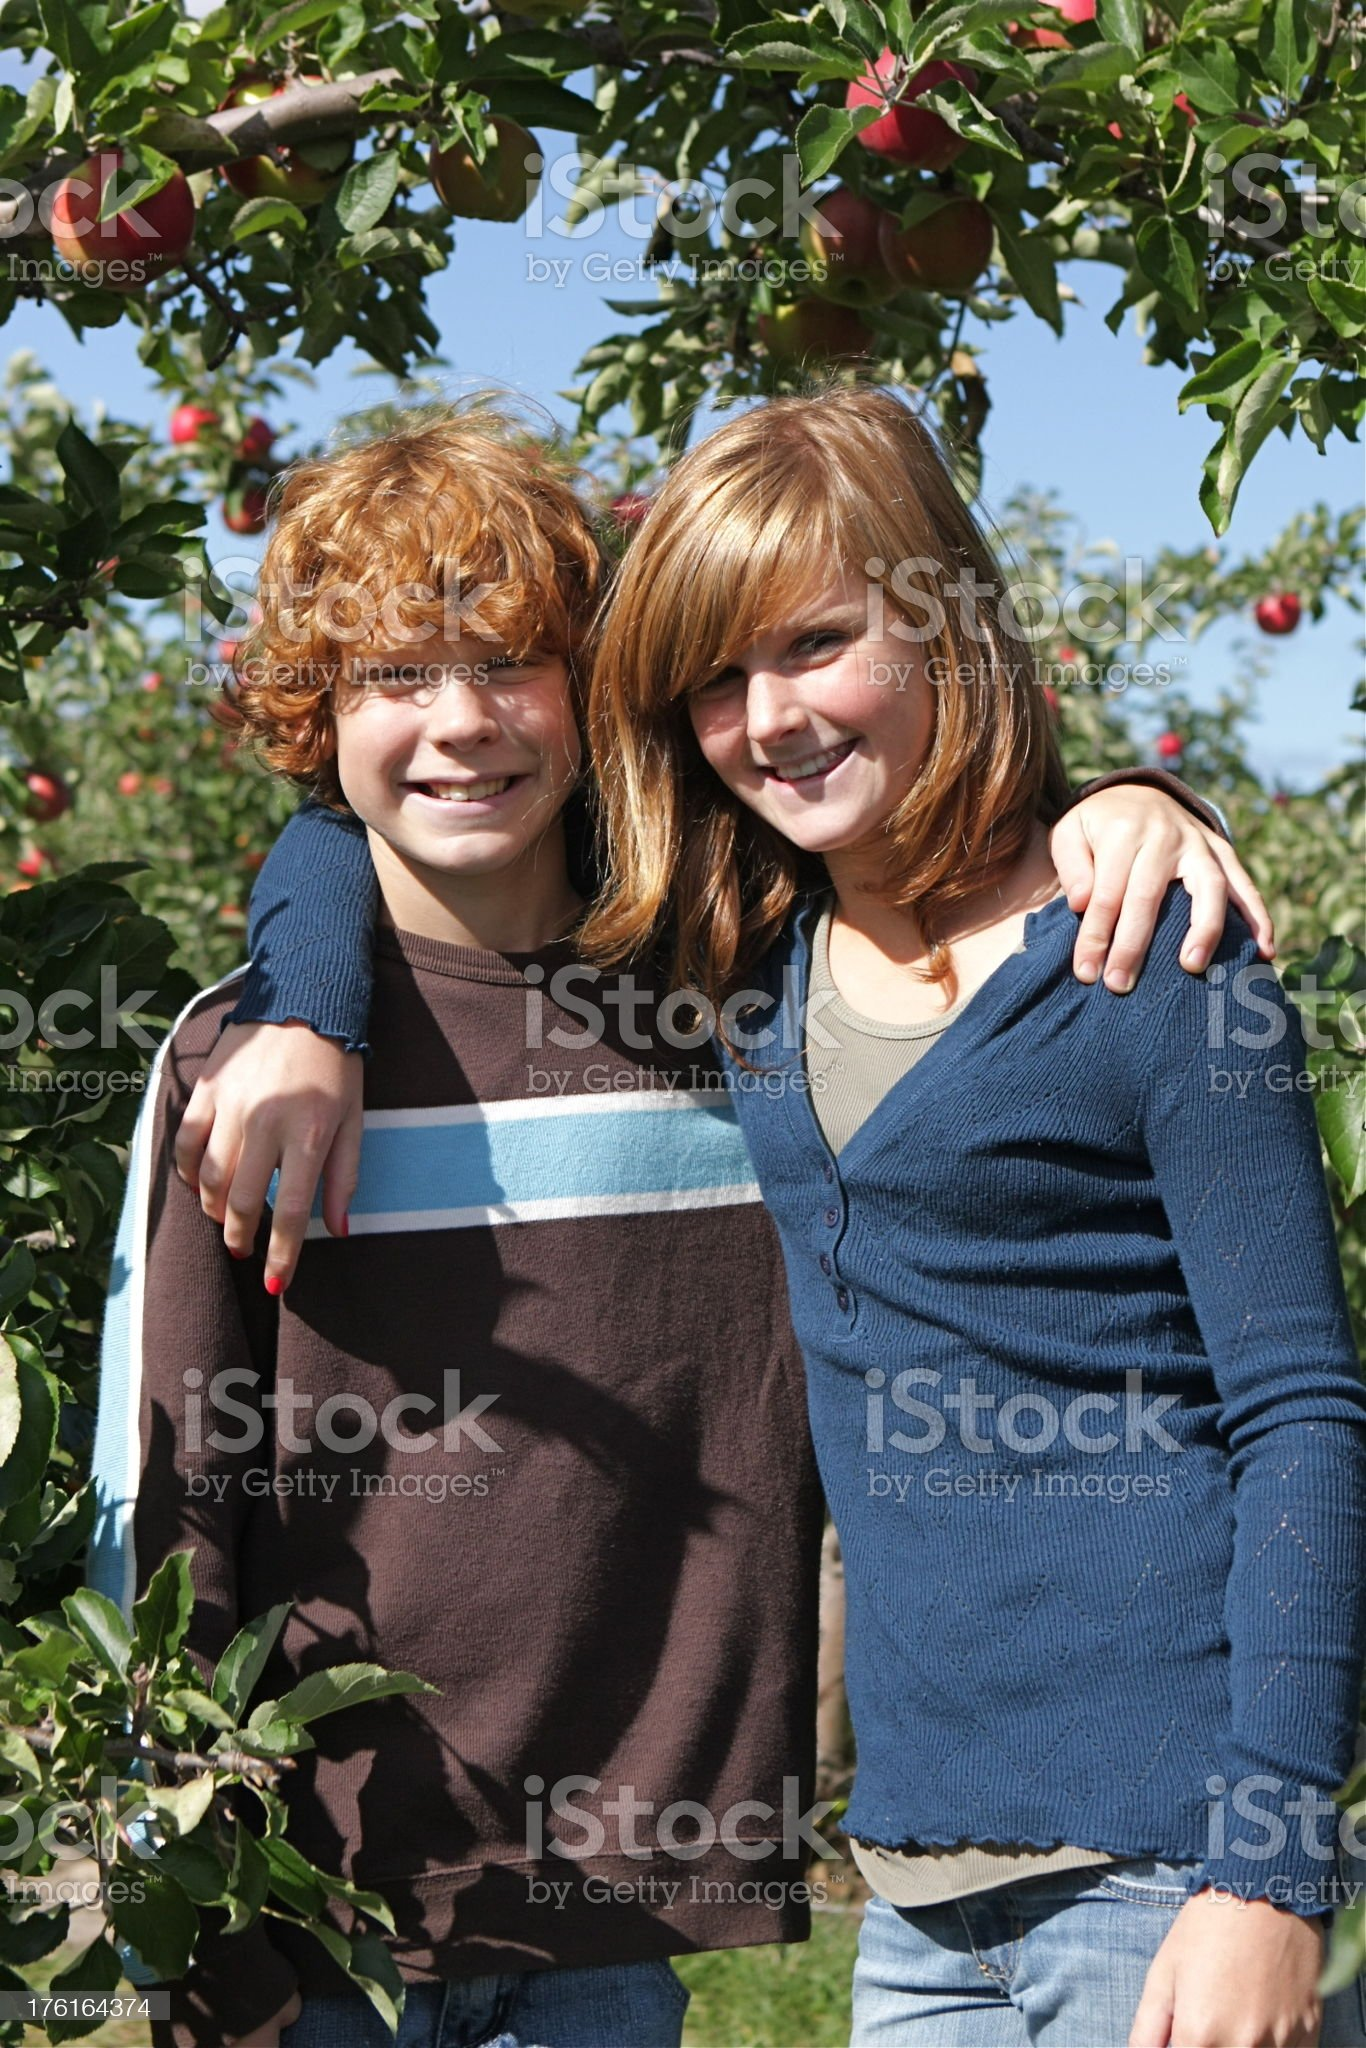 Children at the Apple Orchard royalty-free stock photo